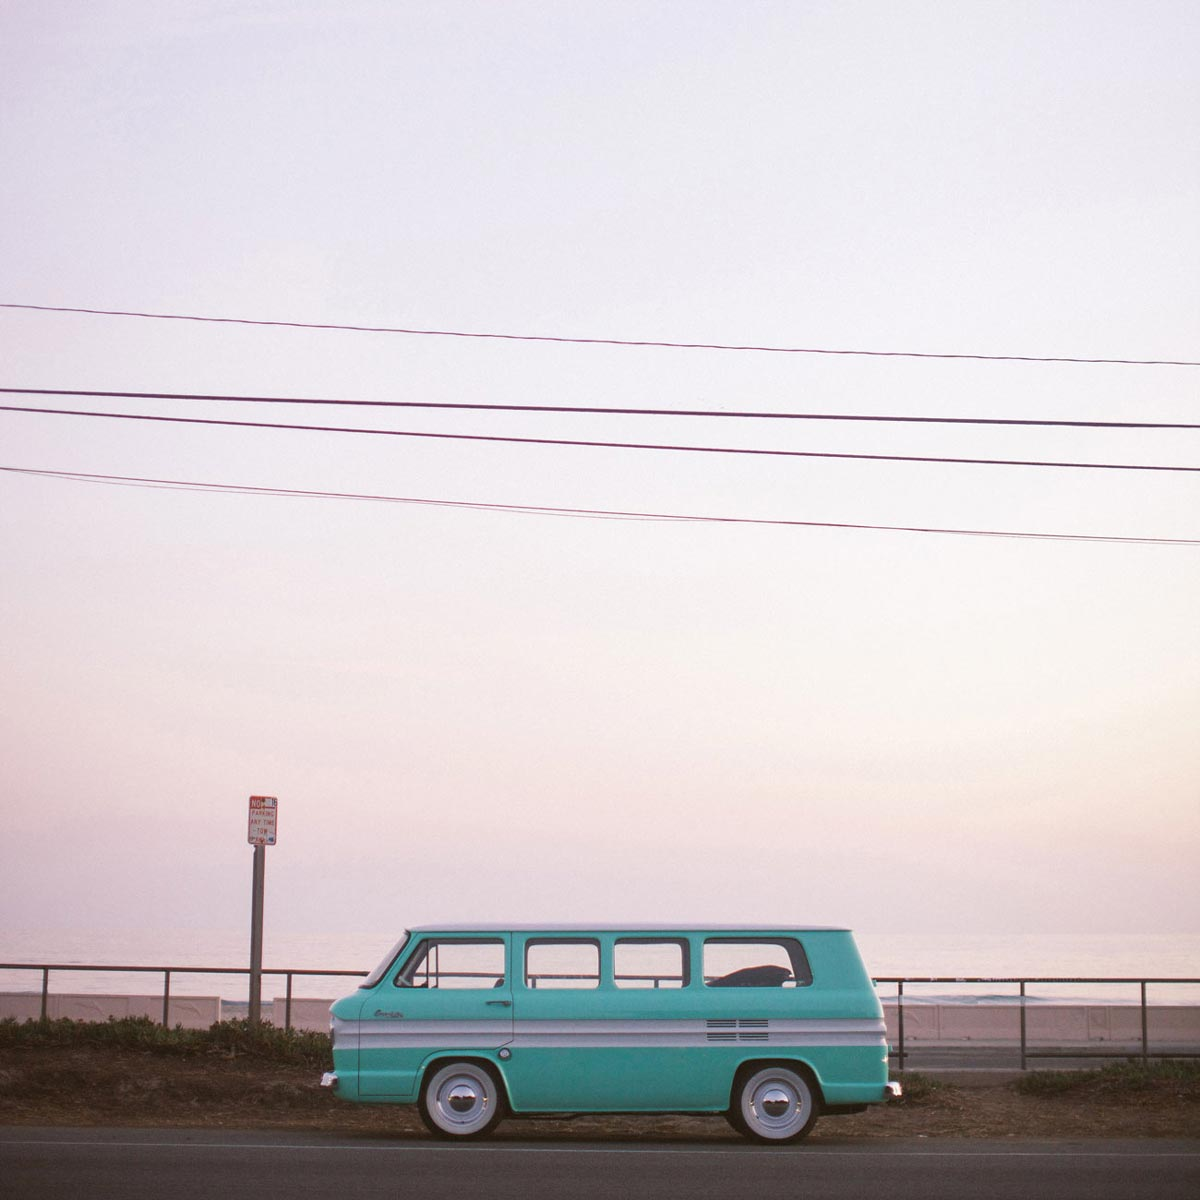 Photo by Max Wanger of Volkswagen camper on coastal highway at sunset